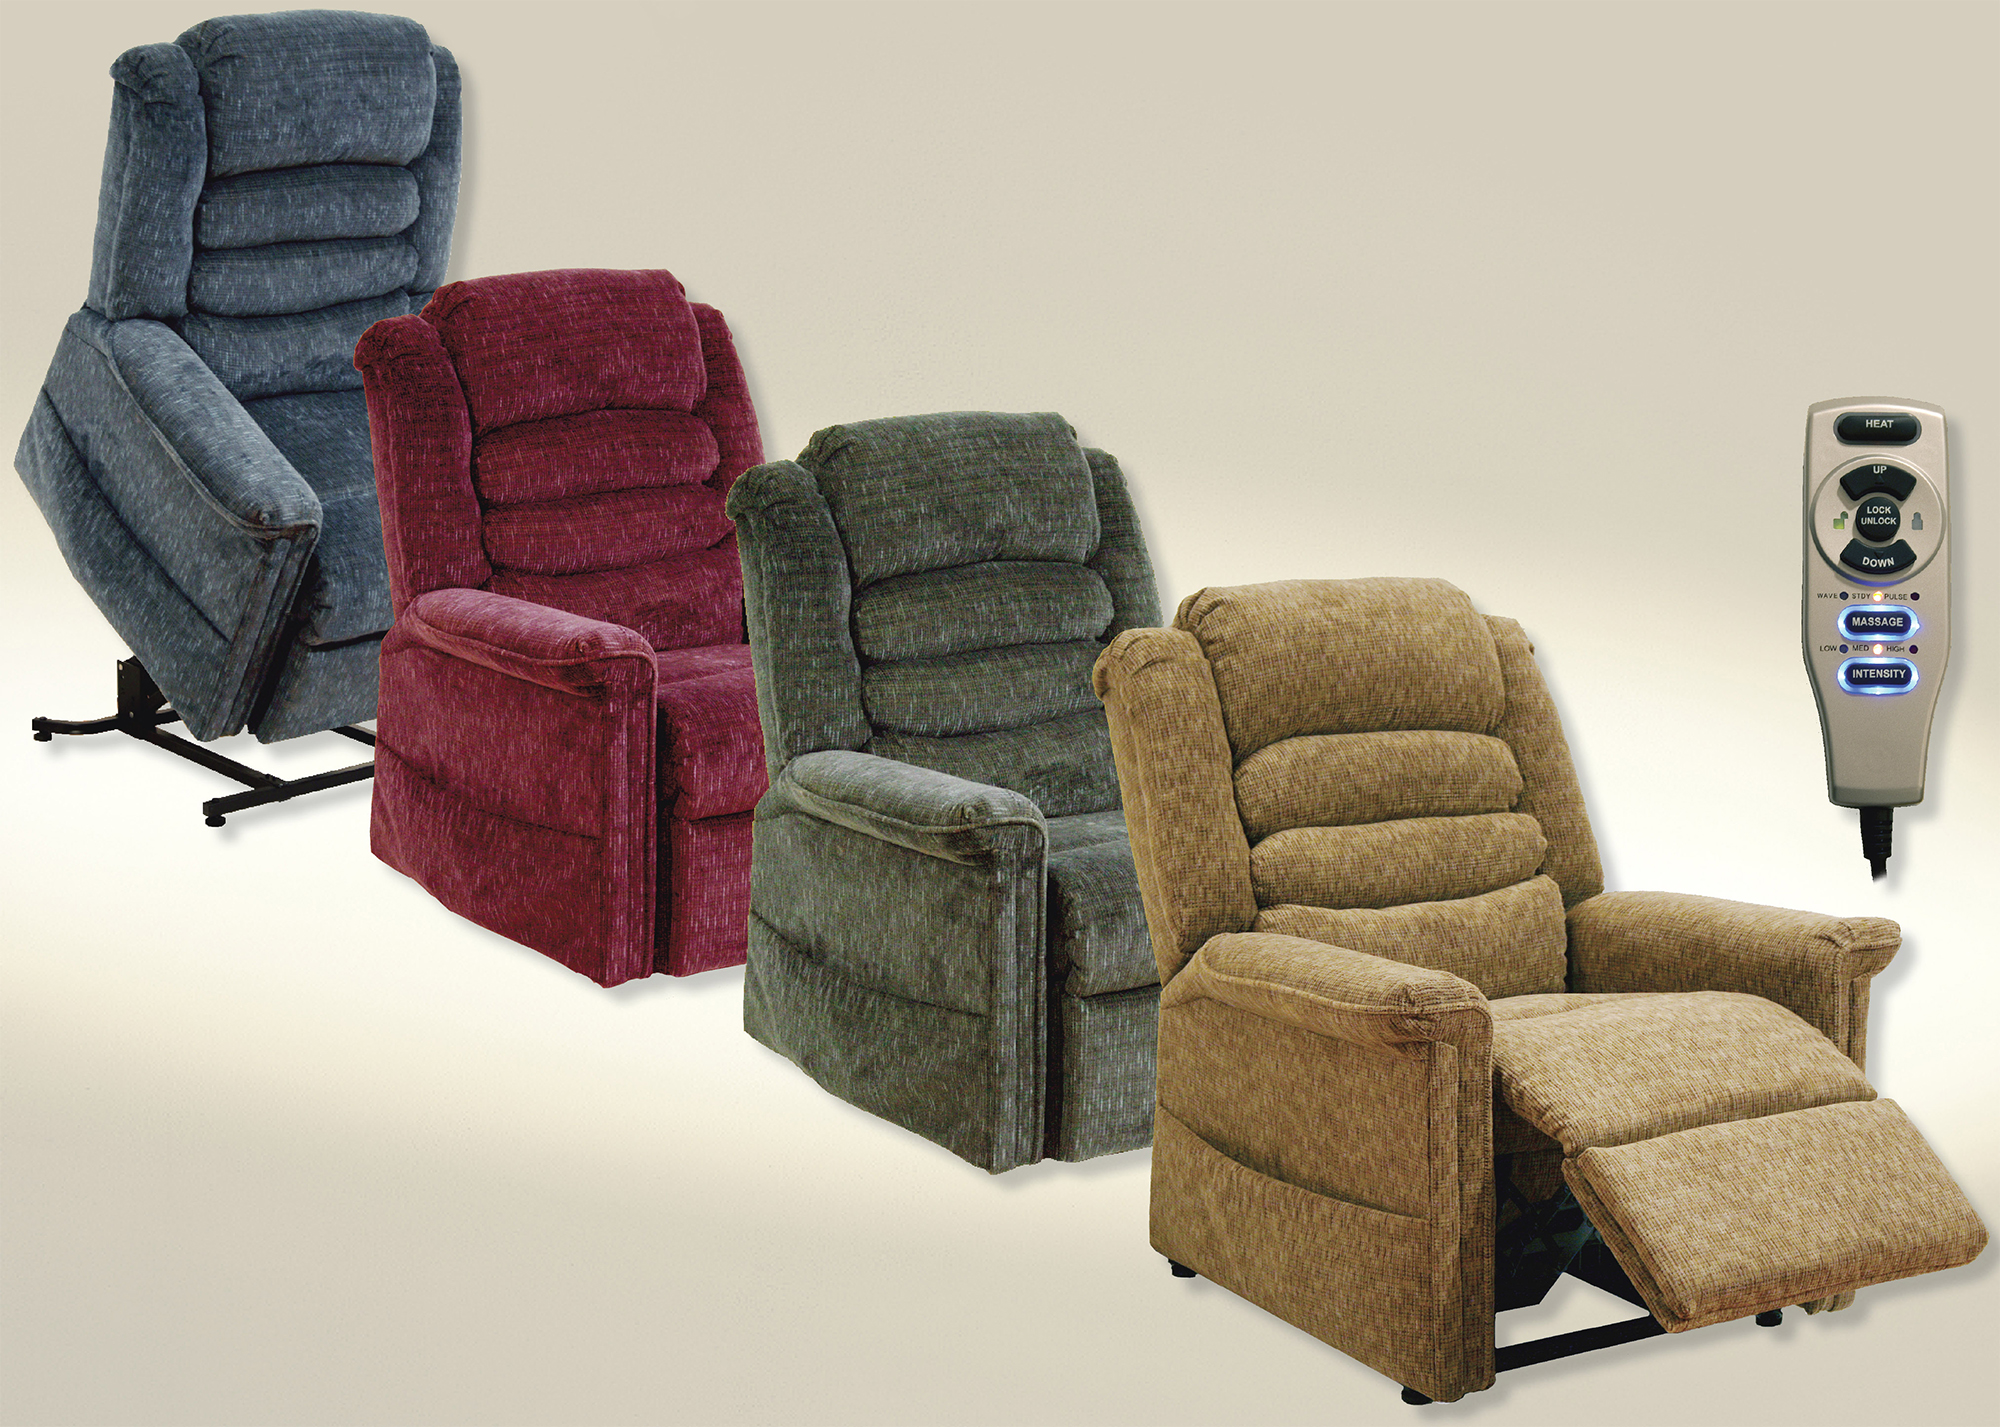 threshold recliners trim headrest item recliner reclinersspencer products motion with power lift height width spencer chairs chair catnapper and